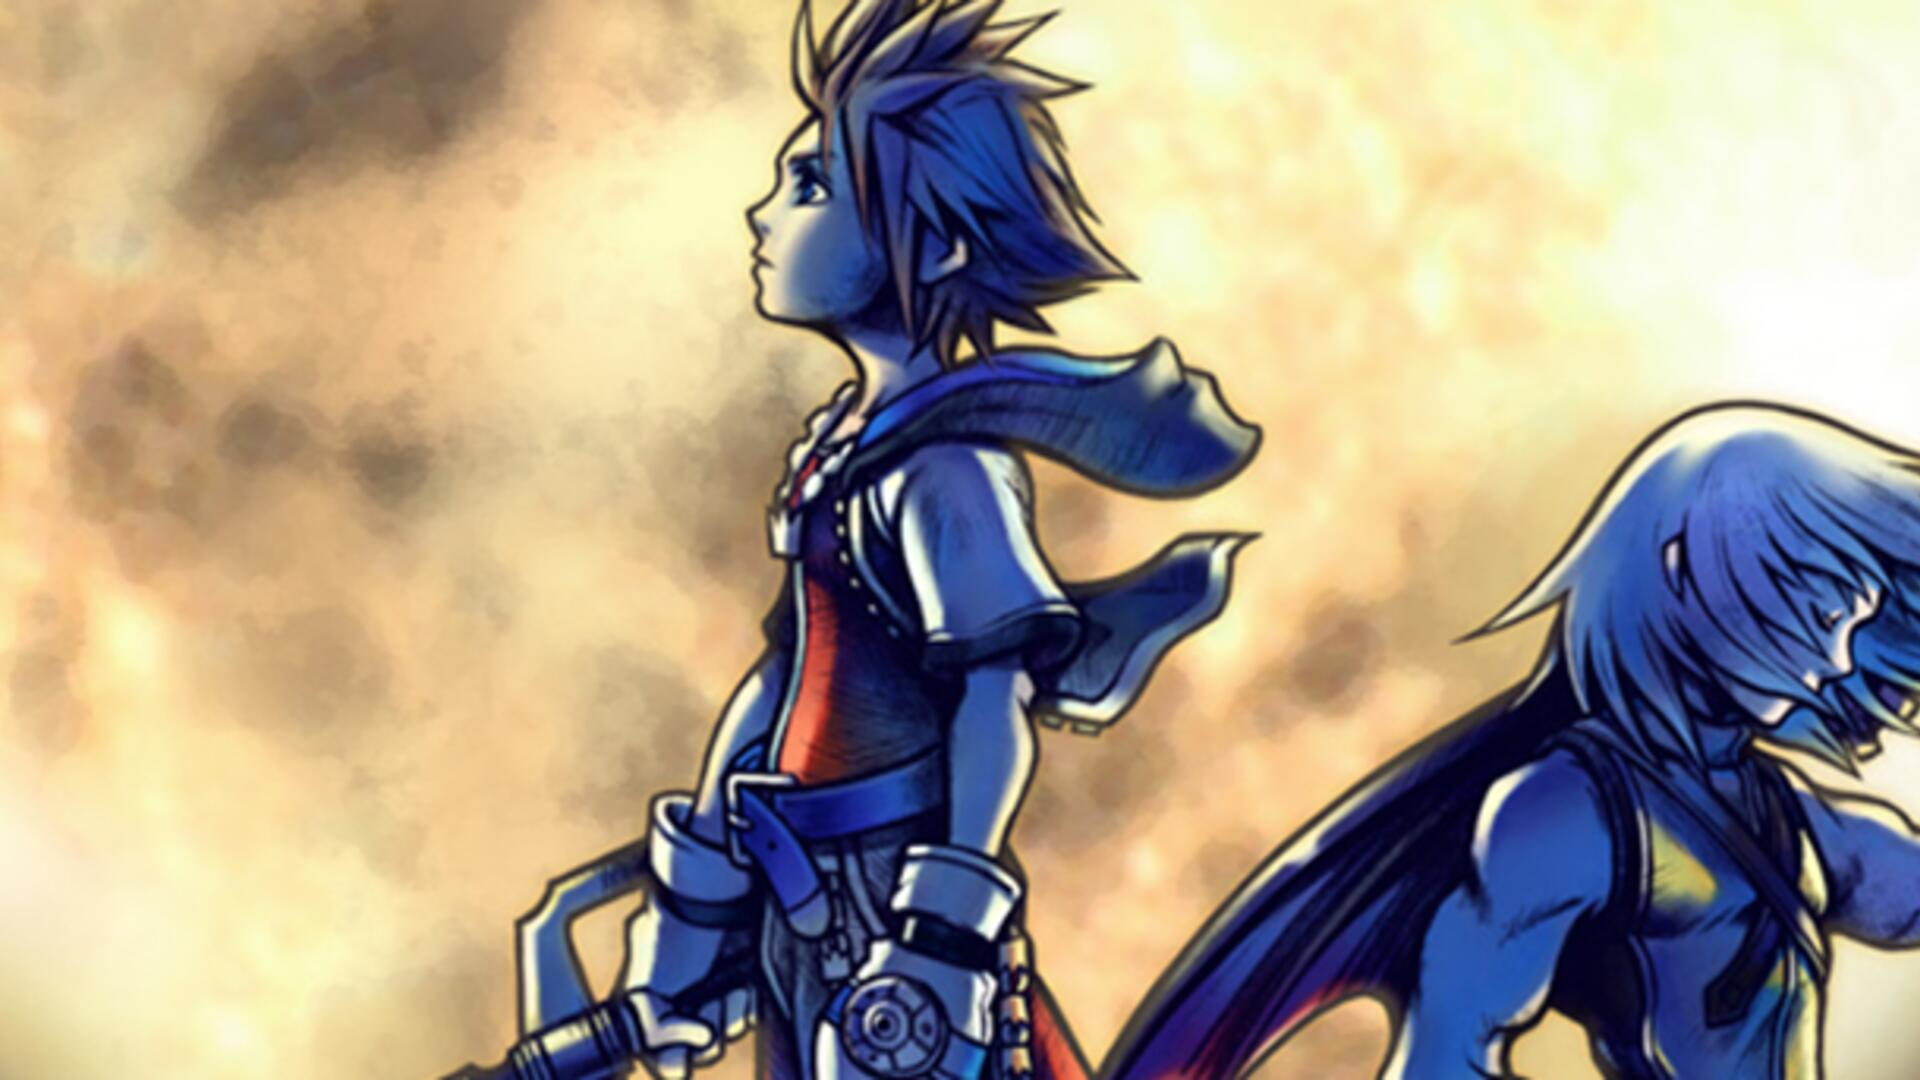 Kingdom Hearts: The Story So Far is The Easiest Way To Get Caught Up on the Series Before Kingdom Hearts 3